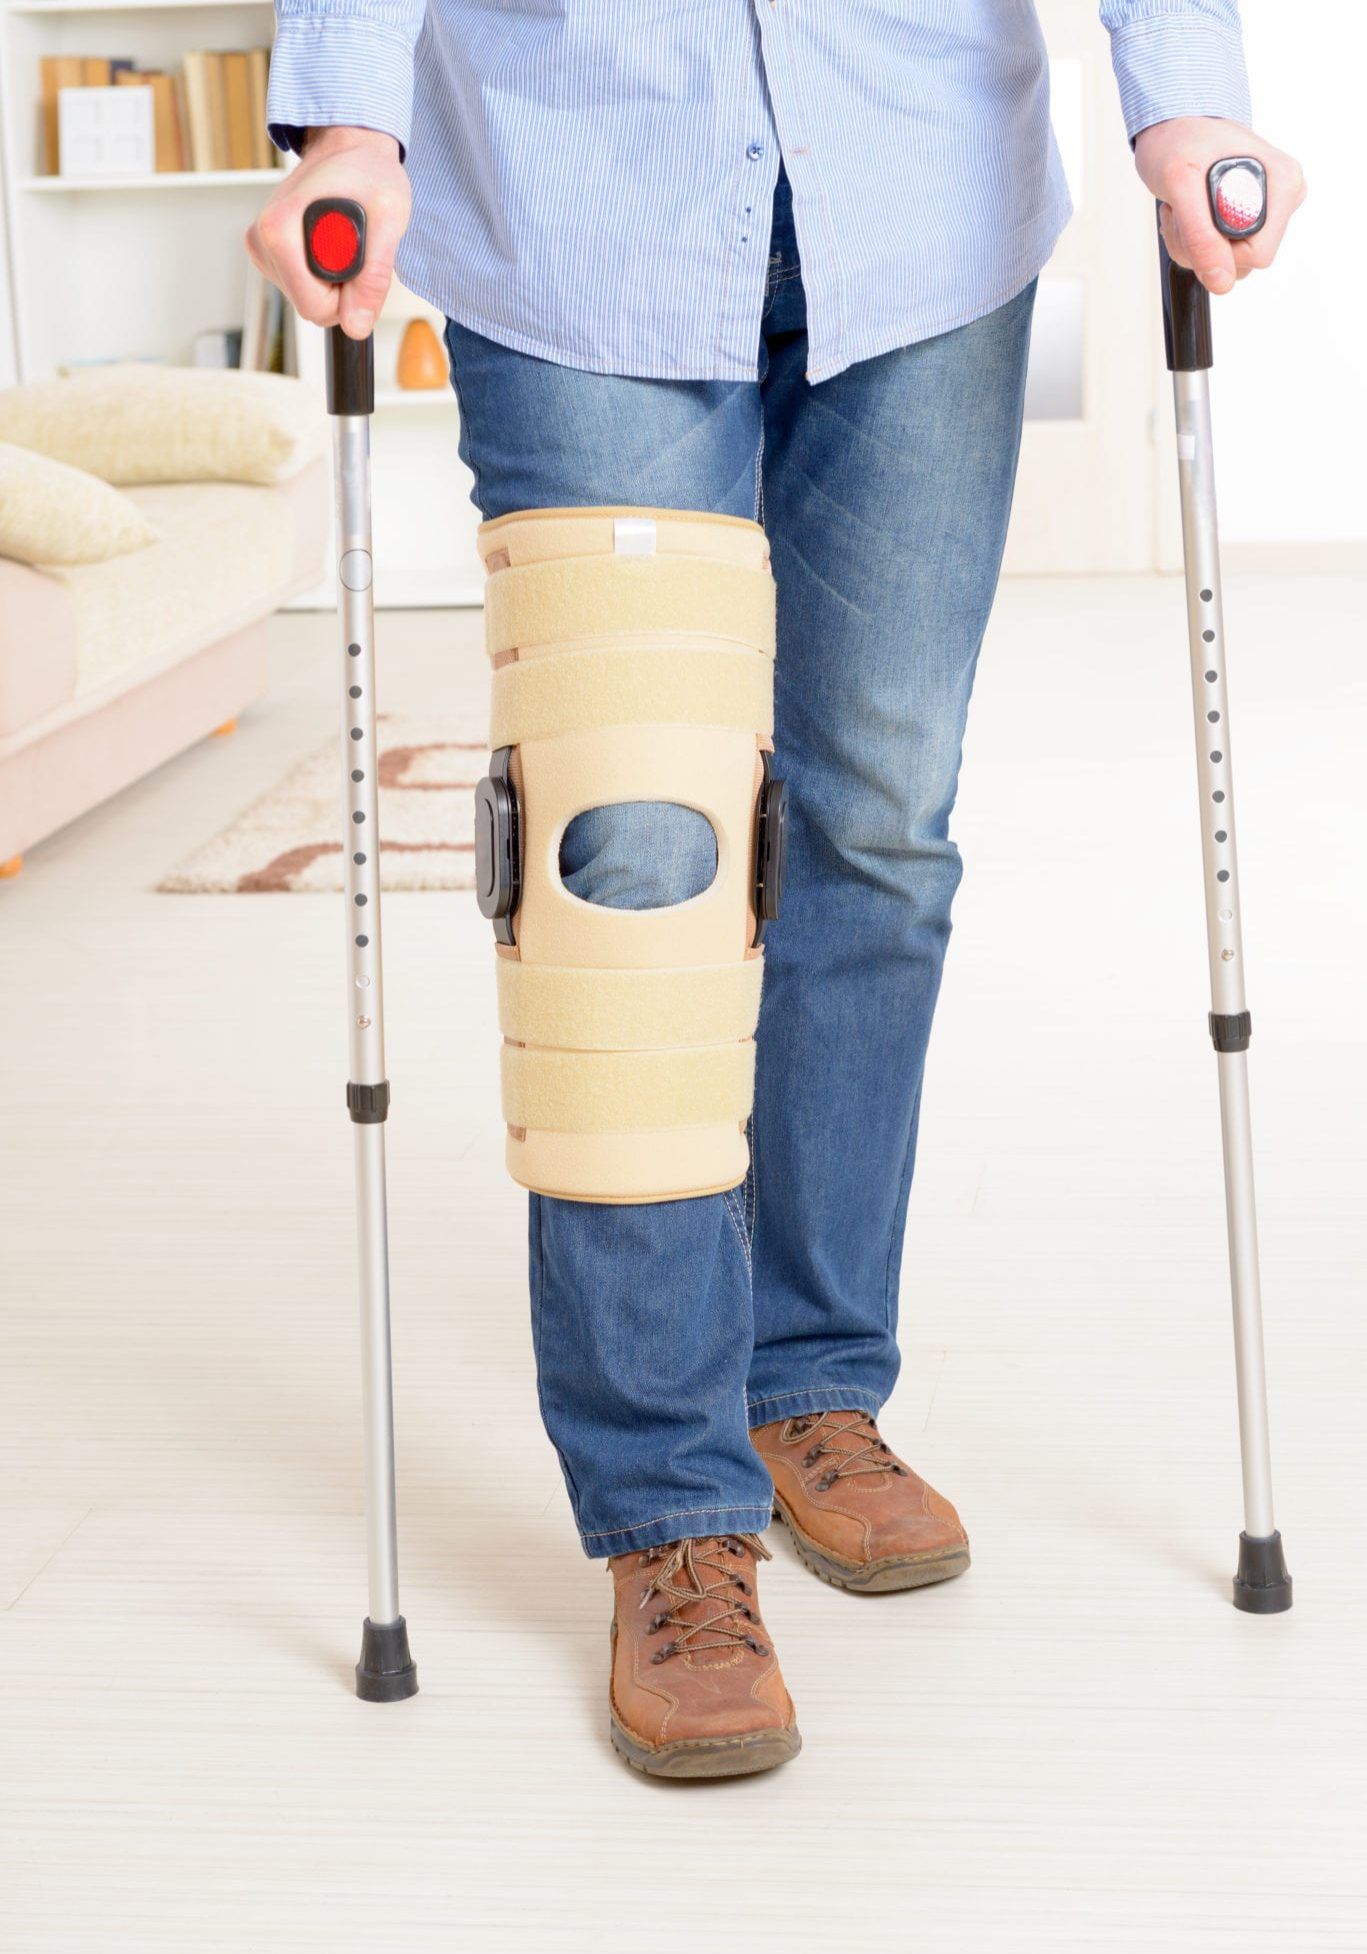 Job injury, workers compensation benefits, disability